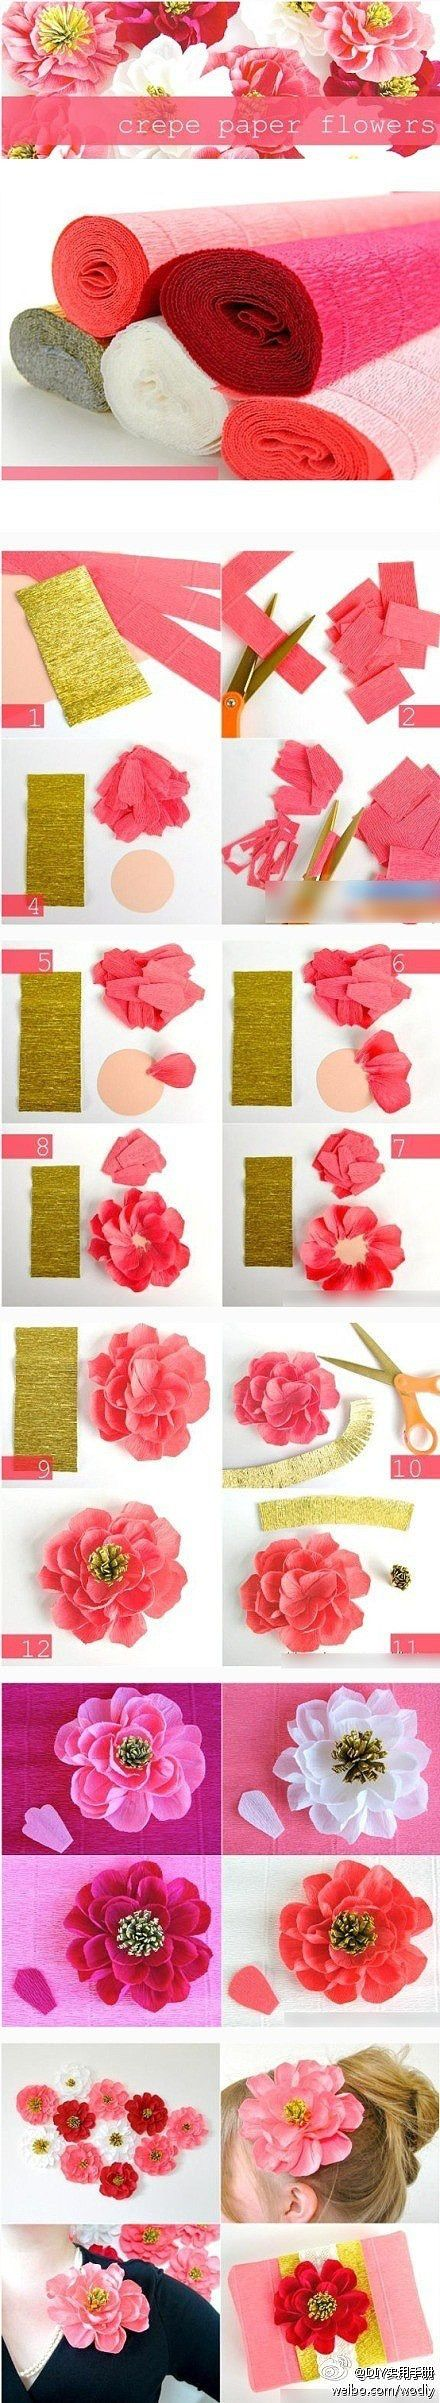 253 best images about paper flowers on pinterest fake flowers inspirational monday do it yourself diy flower series crepe paper flower tutorial dhlflorist Choice Image